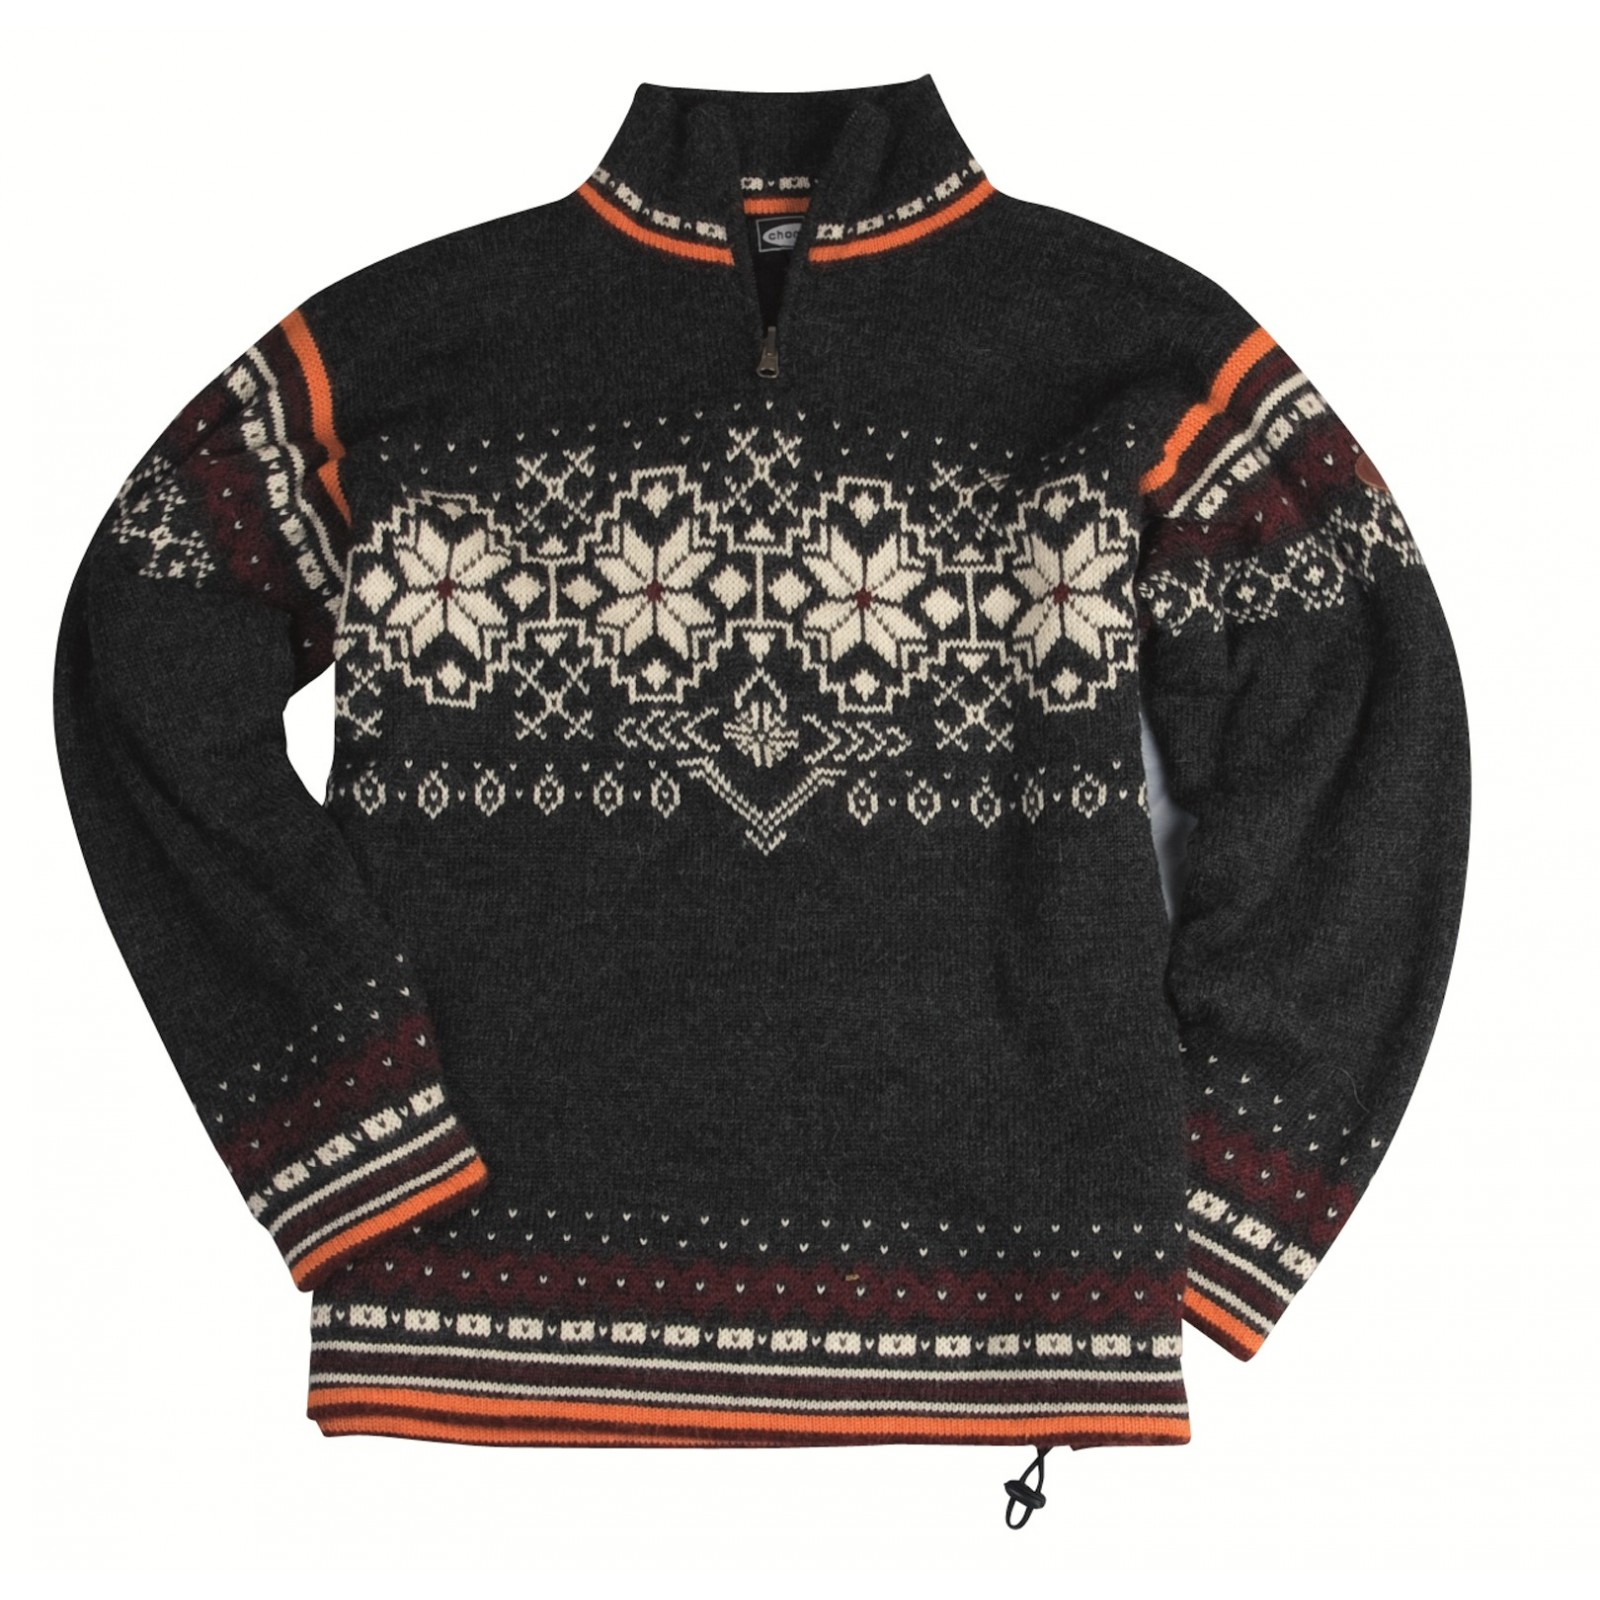 Troyer Marko Pullover (Alpaka Wolle)